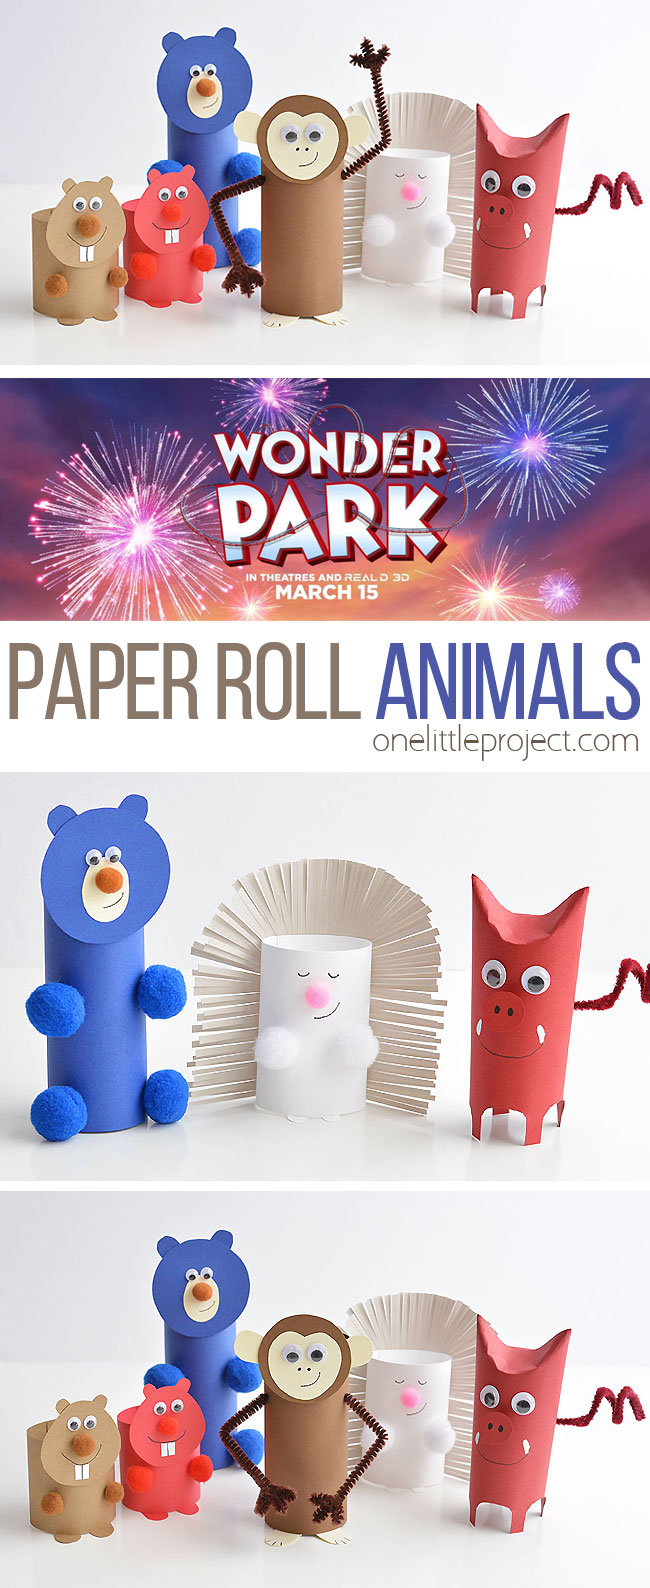 These paper roll animals inspired by Wonder Park (in theaters March 15) are SO CUTE, and they're really easy to make using simple craft supplies! If you use toilet paper rolls, it's a great way to upcycle! Or you can make your own paper rolls using card stock. Either way, this is a super fun kids craft that they can actually play with! #sponsored #WonderPark